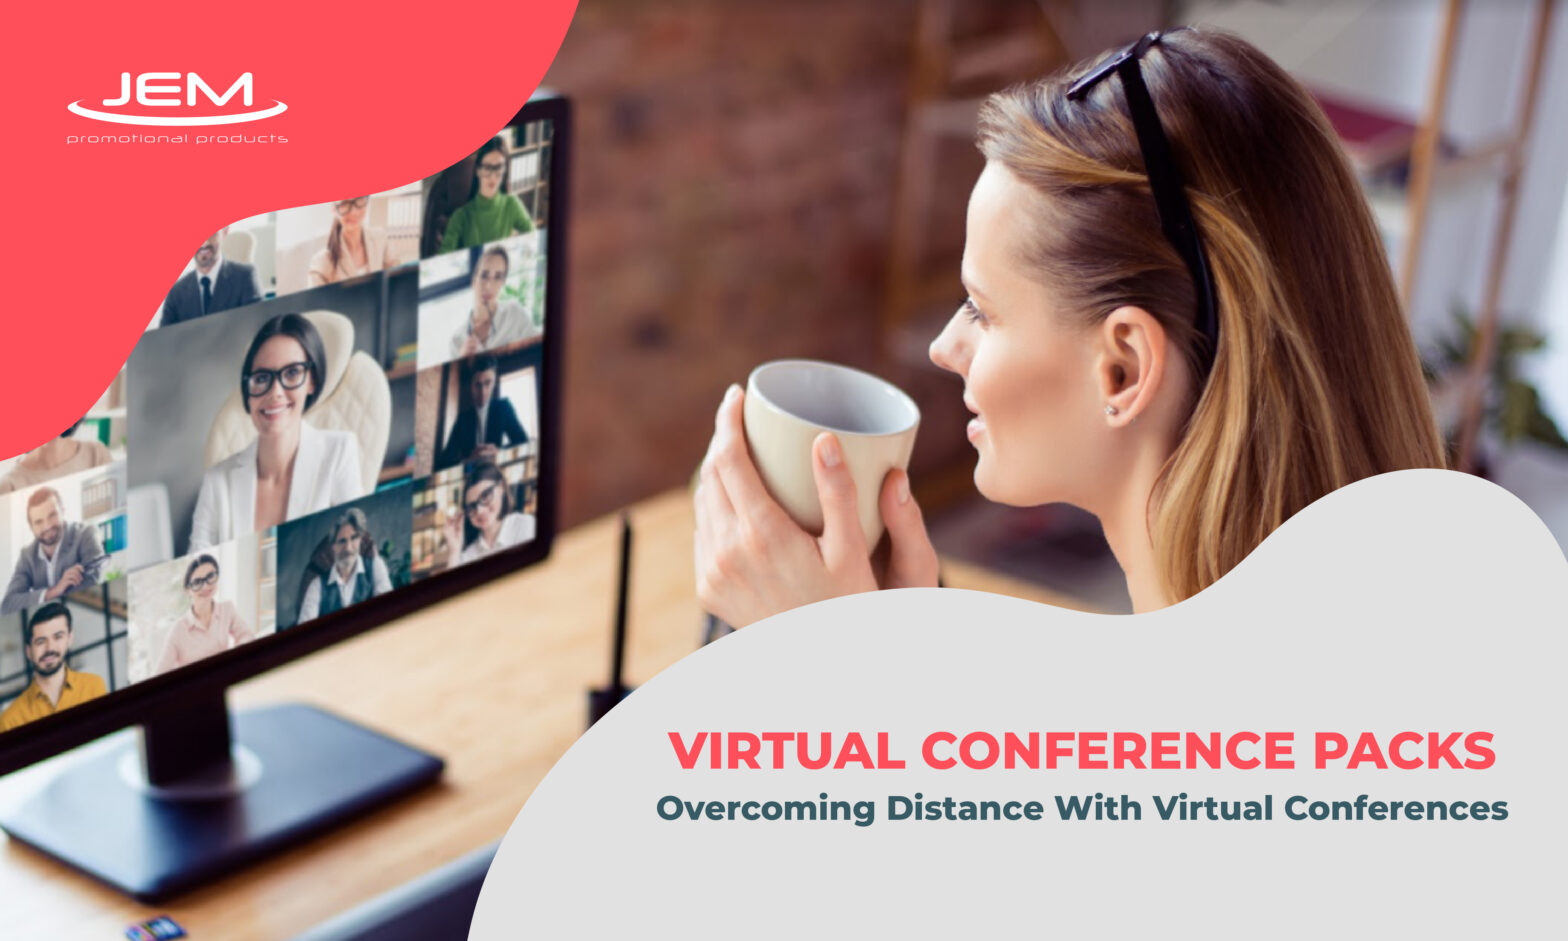 VIRTUAL CONFERENCE PACKS